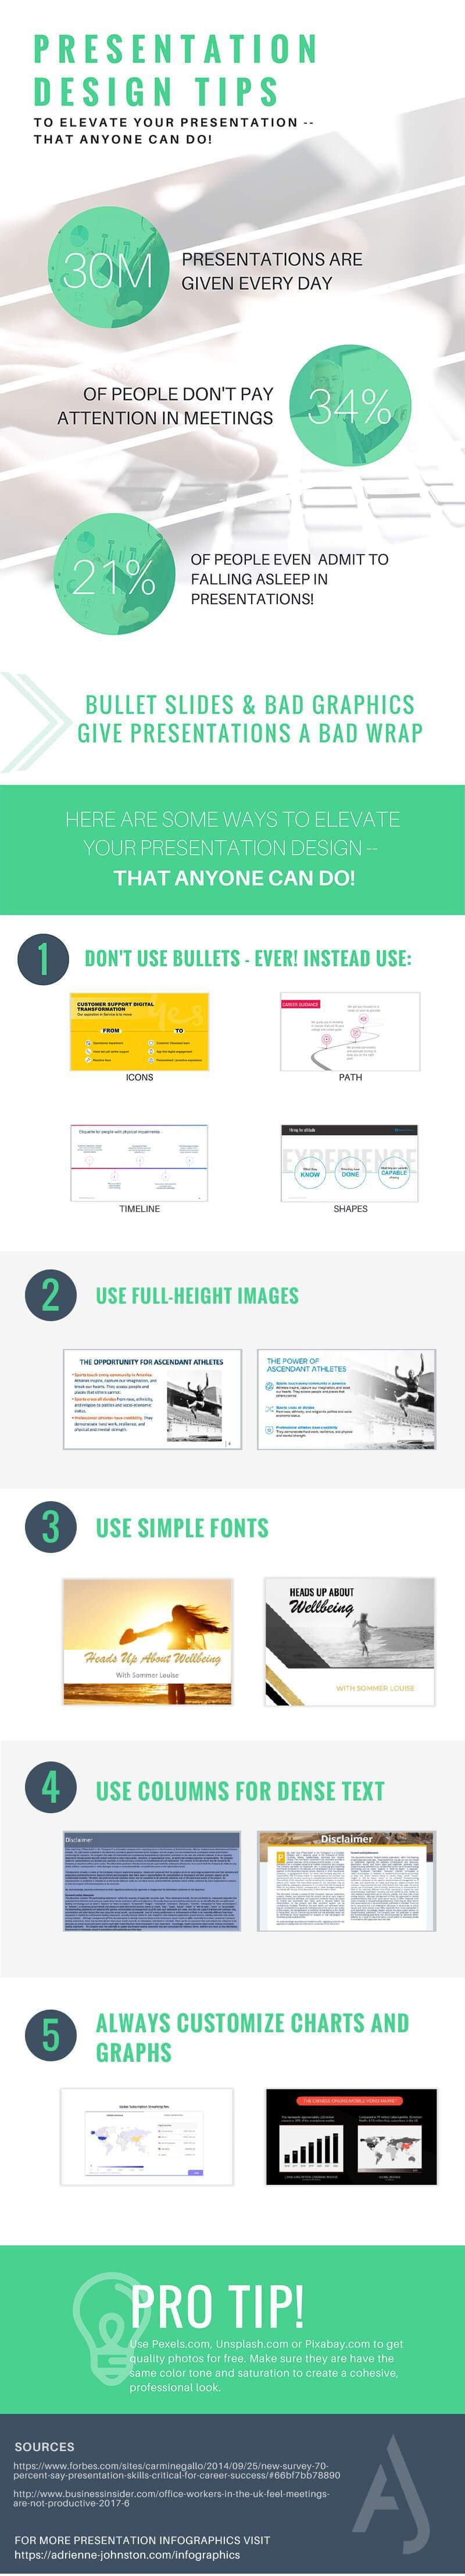 From powerpoint experts simple ways to elevate your presentation design ideas also rh pinterest